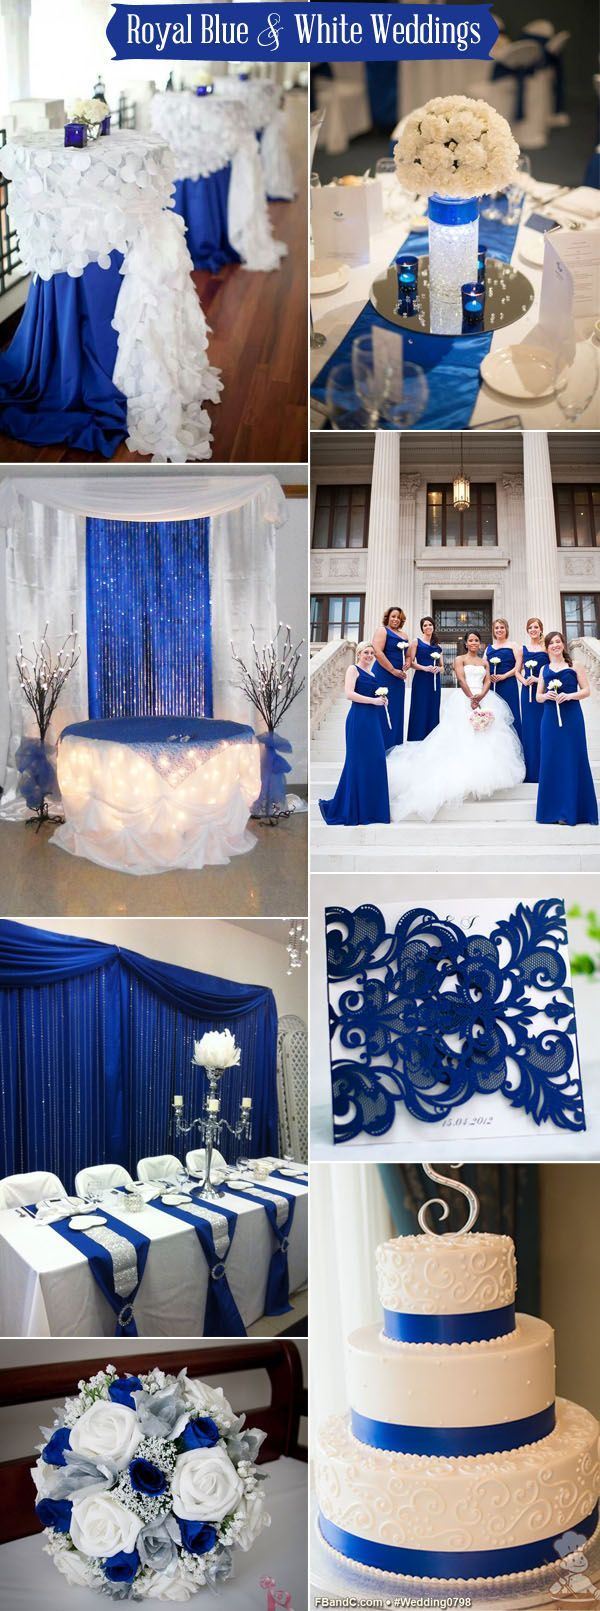 Best 25 royal blue weddings ideas on pinterest for Baby blue wedding decoration ideas